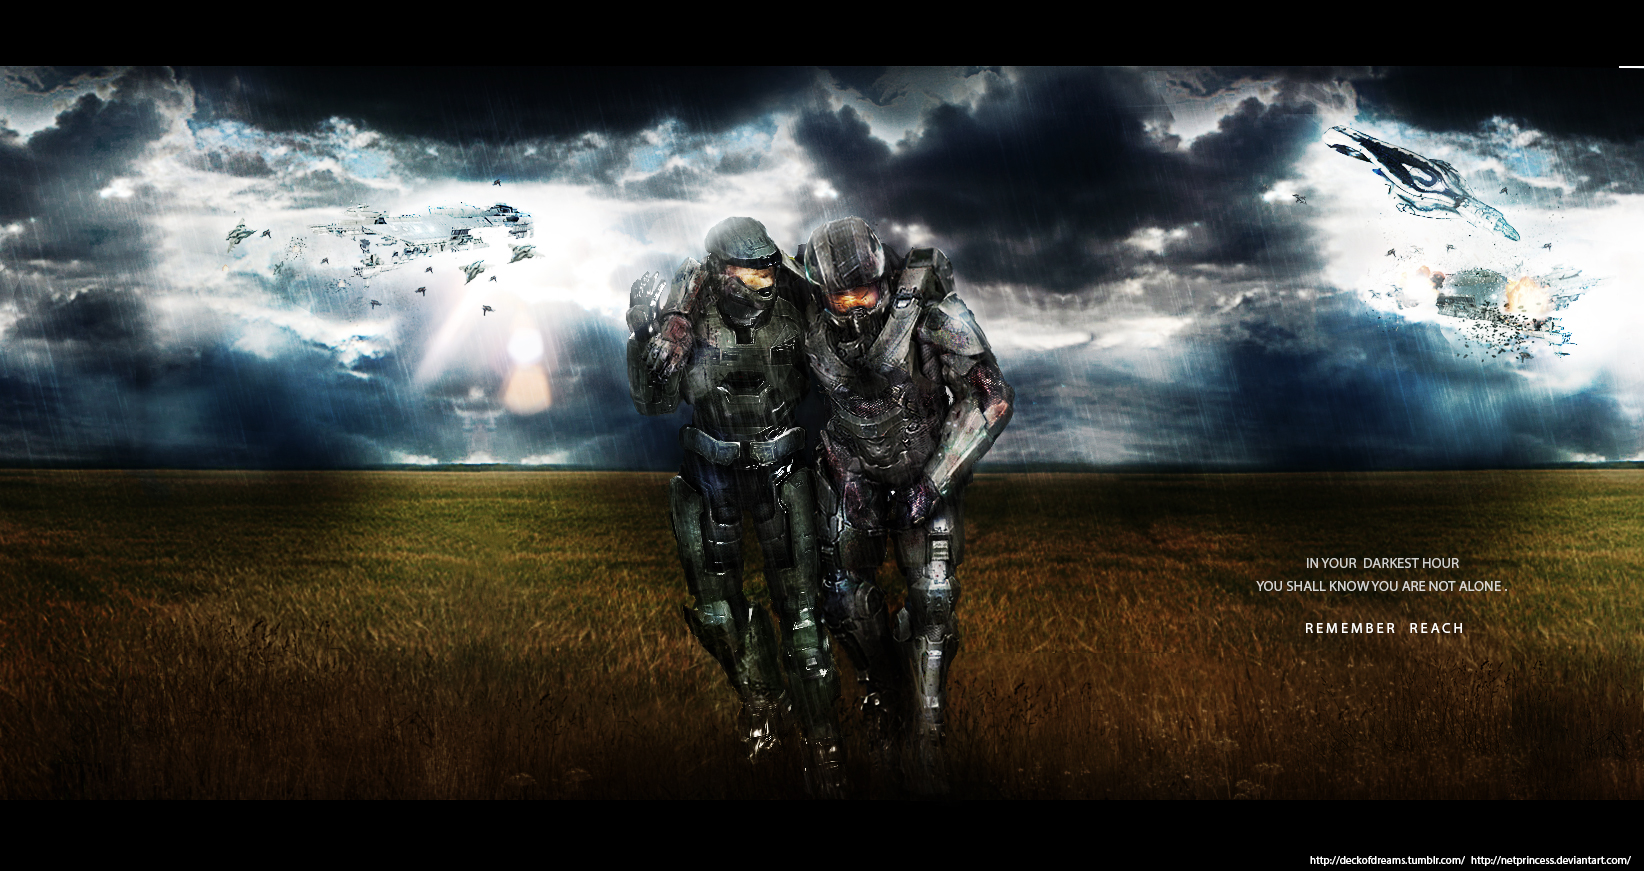 Halo noble 6 master chief by aranict on deviantart - Master chief in halo reach ...